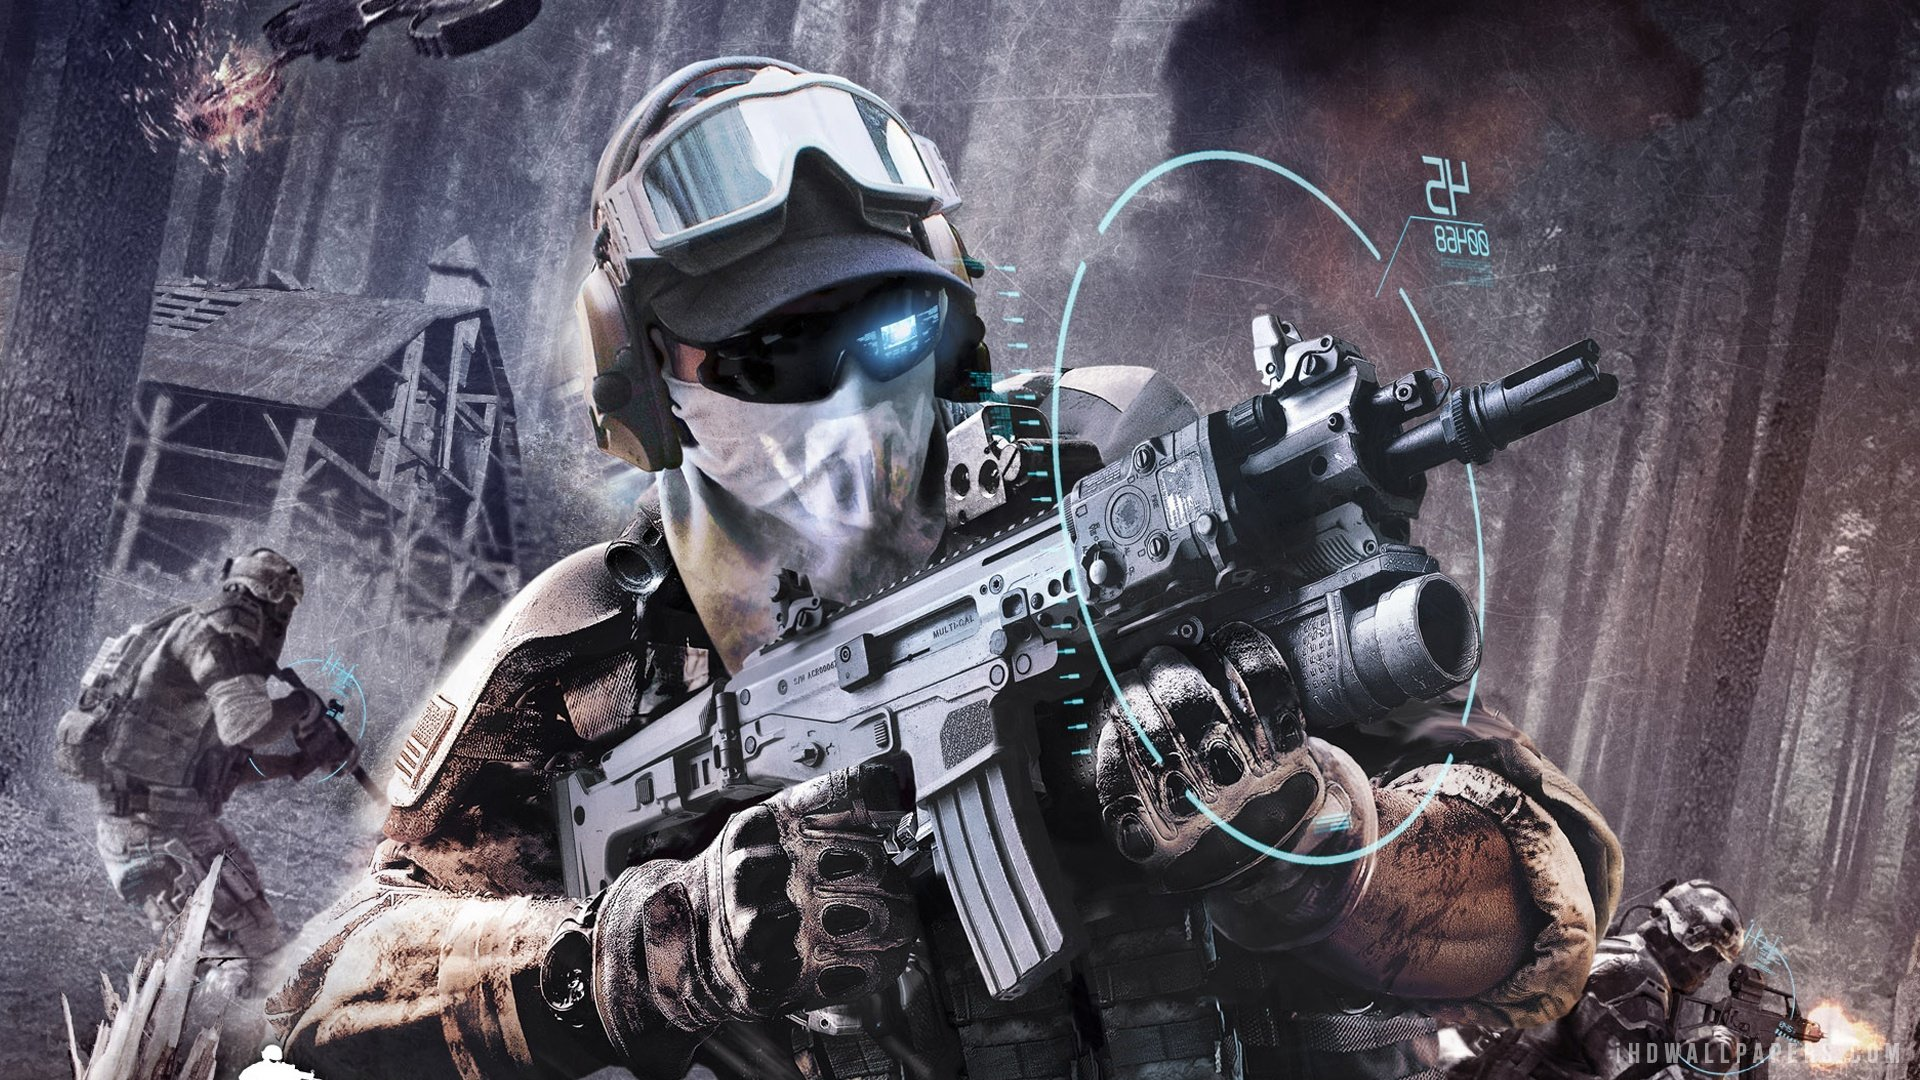 Ghost Recon Future Soldier 2 HD Wallpaper   iHD Wallpapers 1920x1080